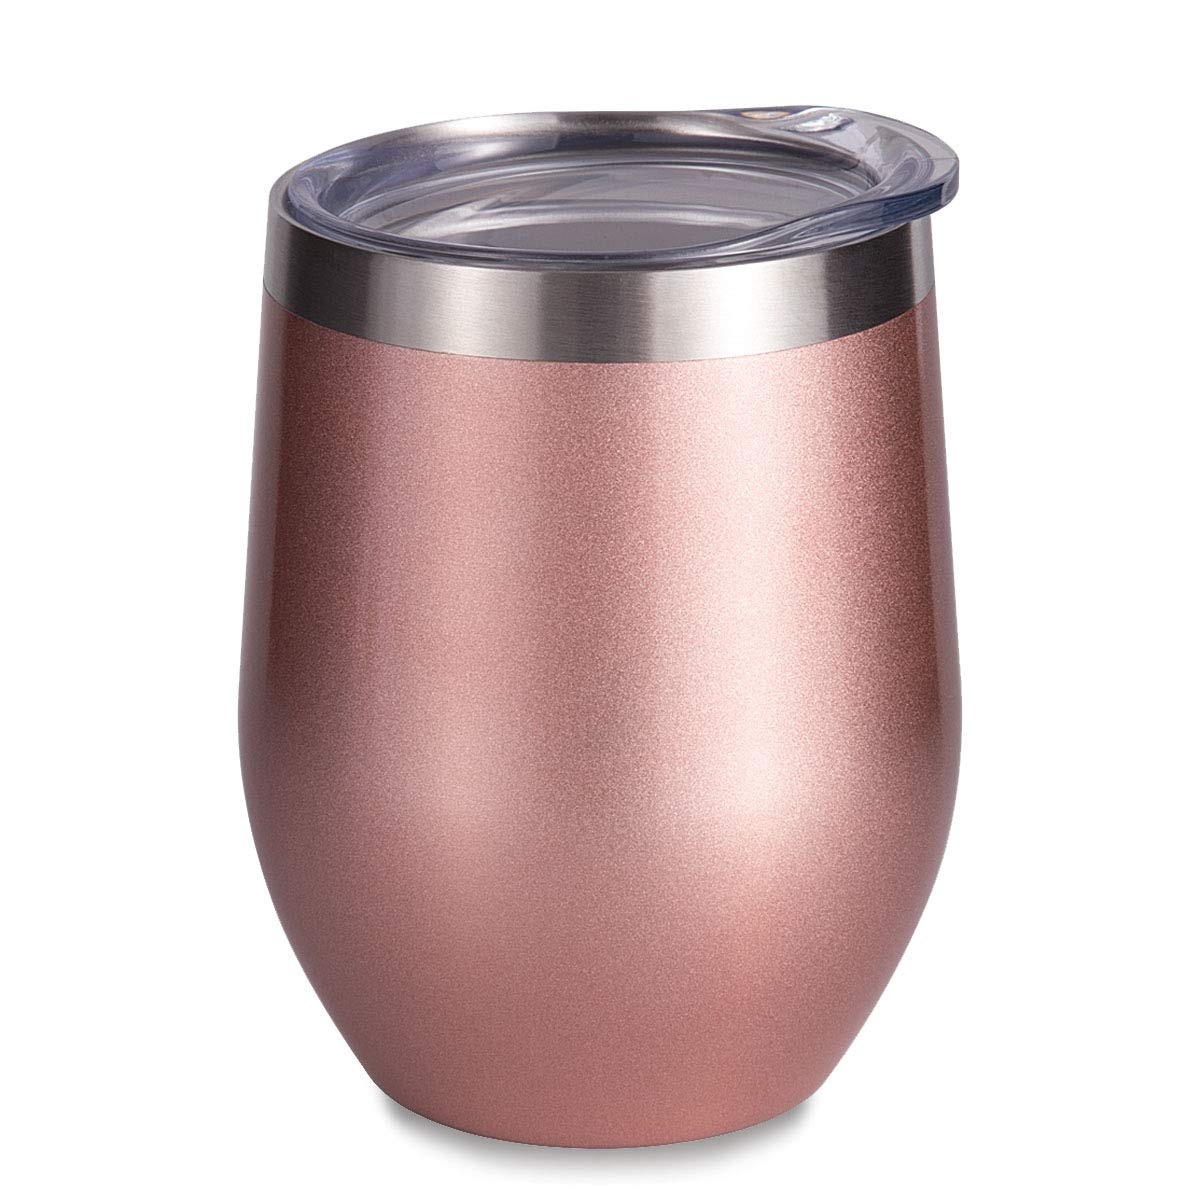 Vacuum Insulated Wine Tumbler with Lid Rose Gold, Double Wall Stainless Steel Stemless Insulated Wine Glass, Durable Insulated Coffee Mug, for Champaign, Cocktail, Beer, Office, 12oz by SUNWILL